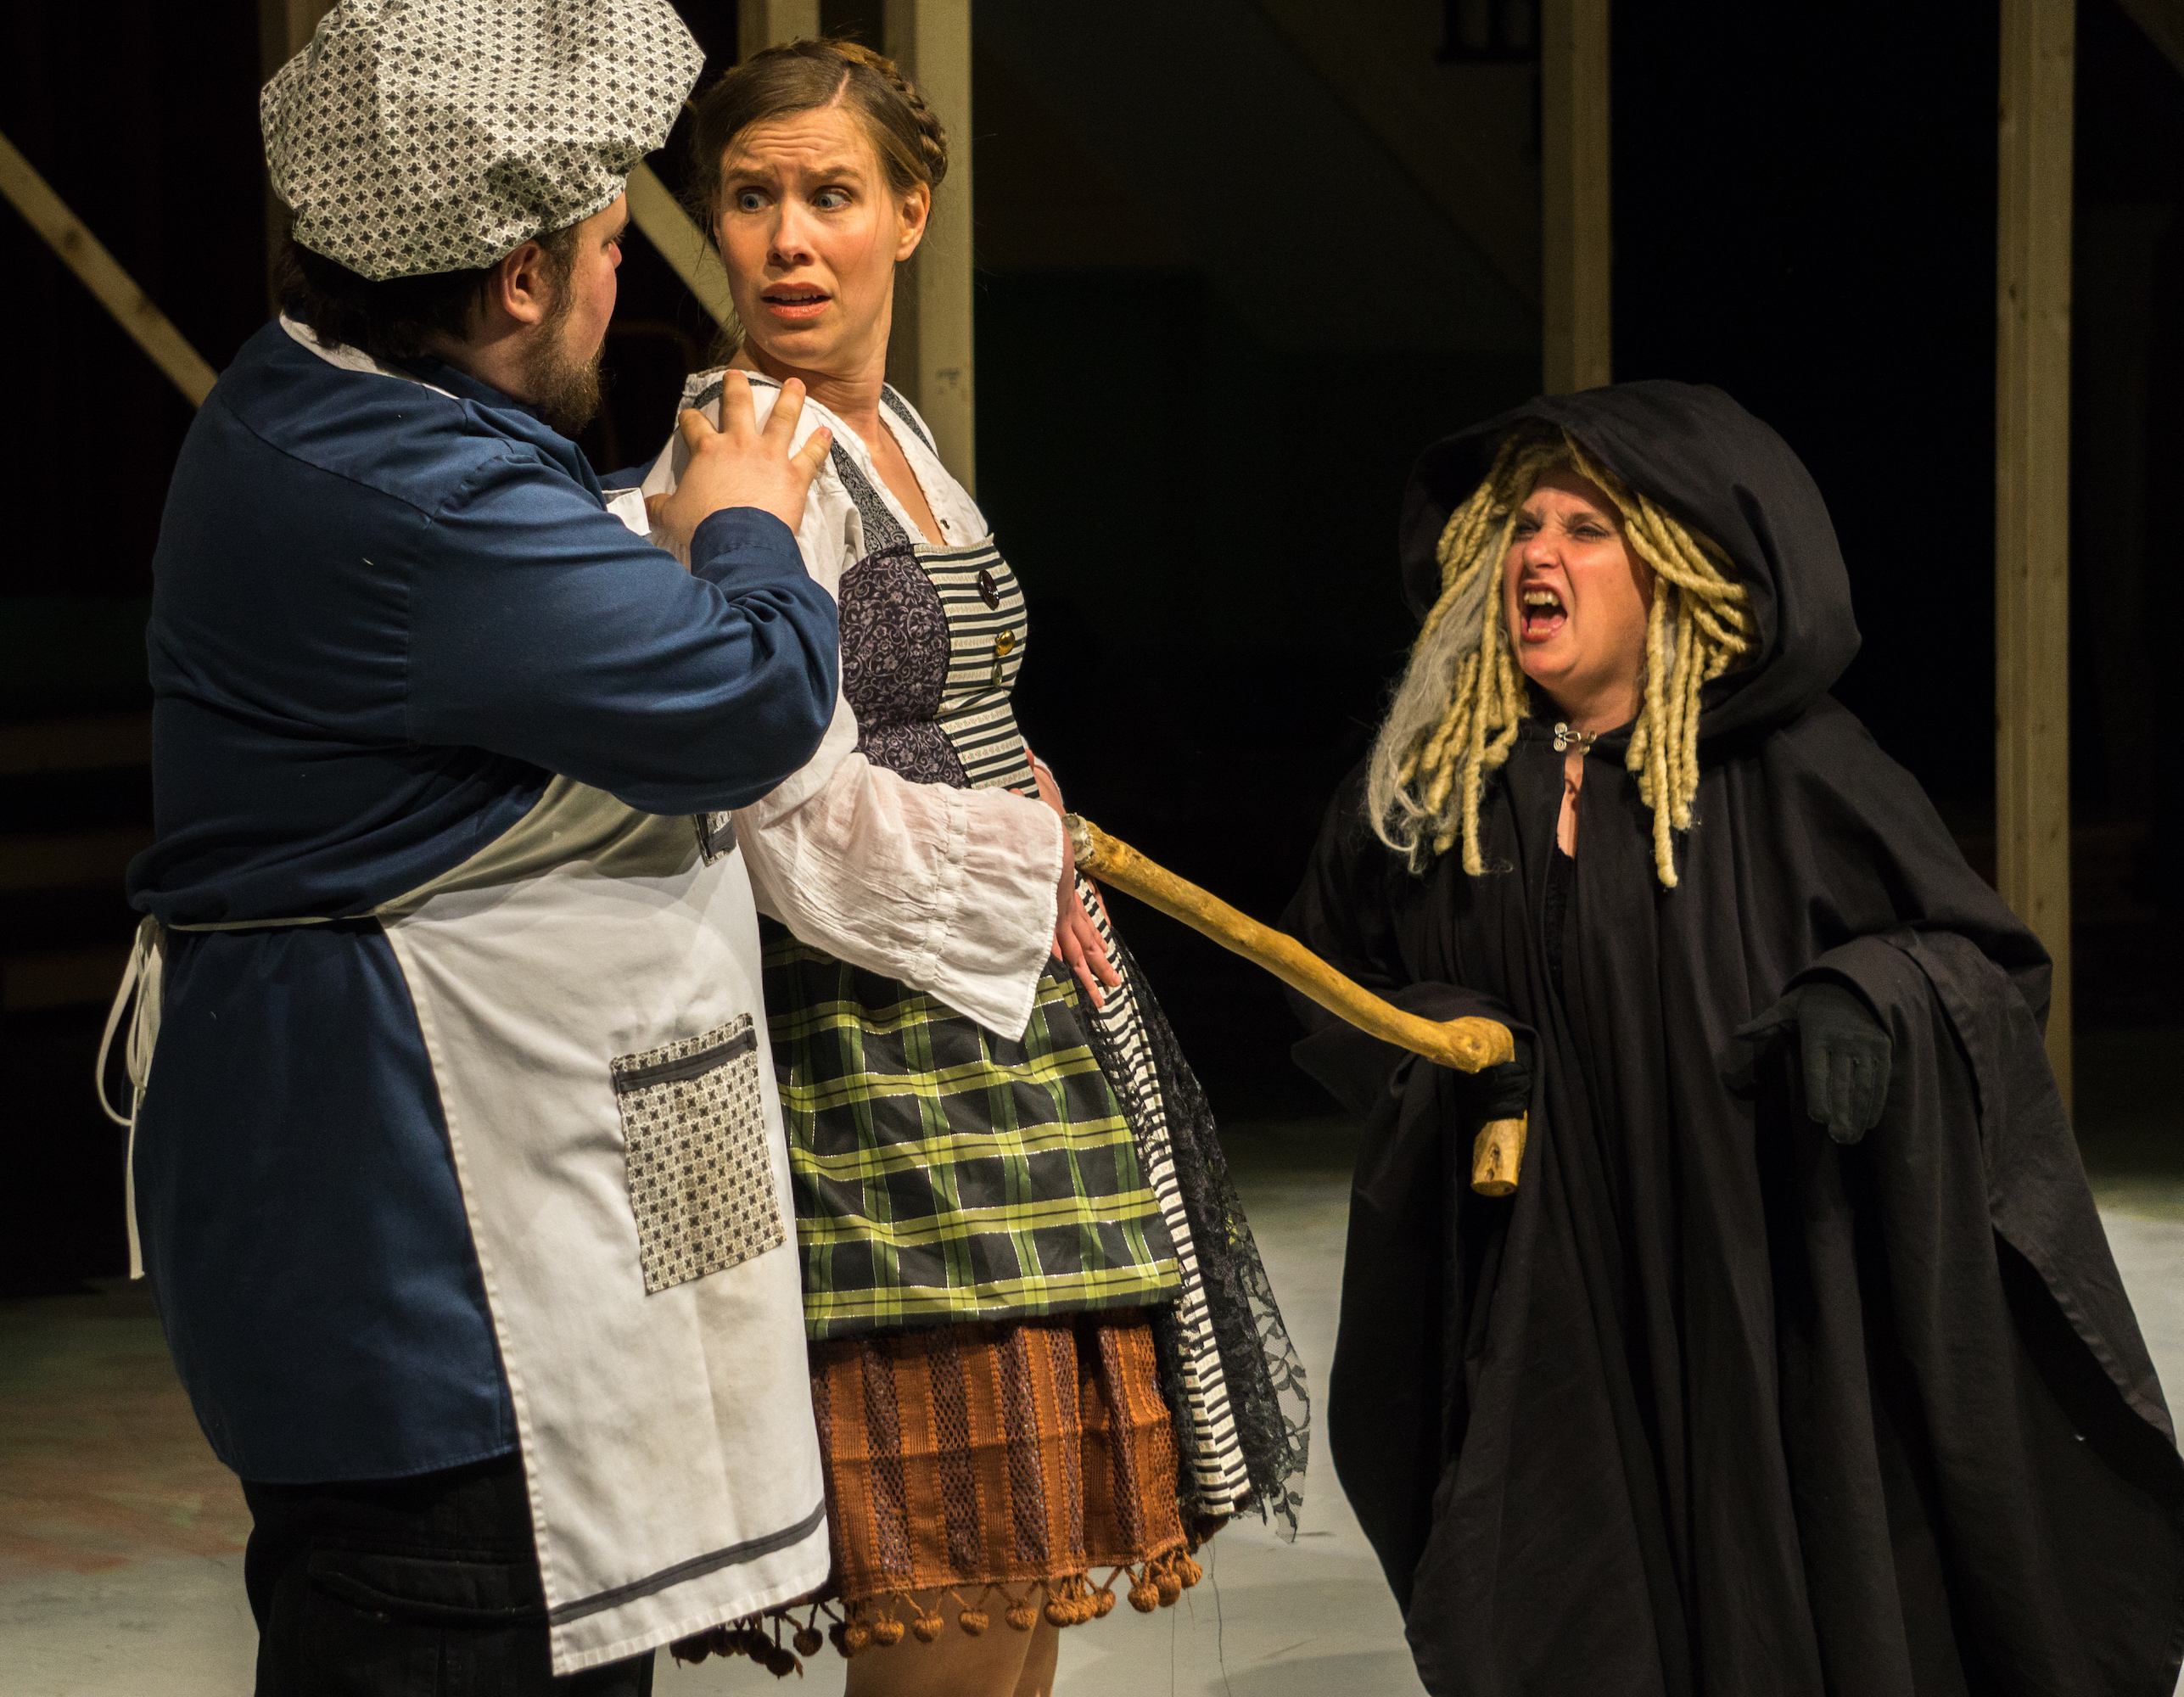 The Witch (cloaked in black) threatens The Bakers Wife (Carolyn Wesley in multi-colored, short skirted peasant outfit) by lunging at her with her magic cane, while the Baker (Nick Wheeler, in polka dotted baking cap & matching apron) tries to protect his wife